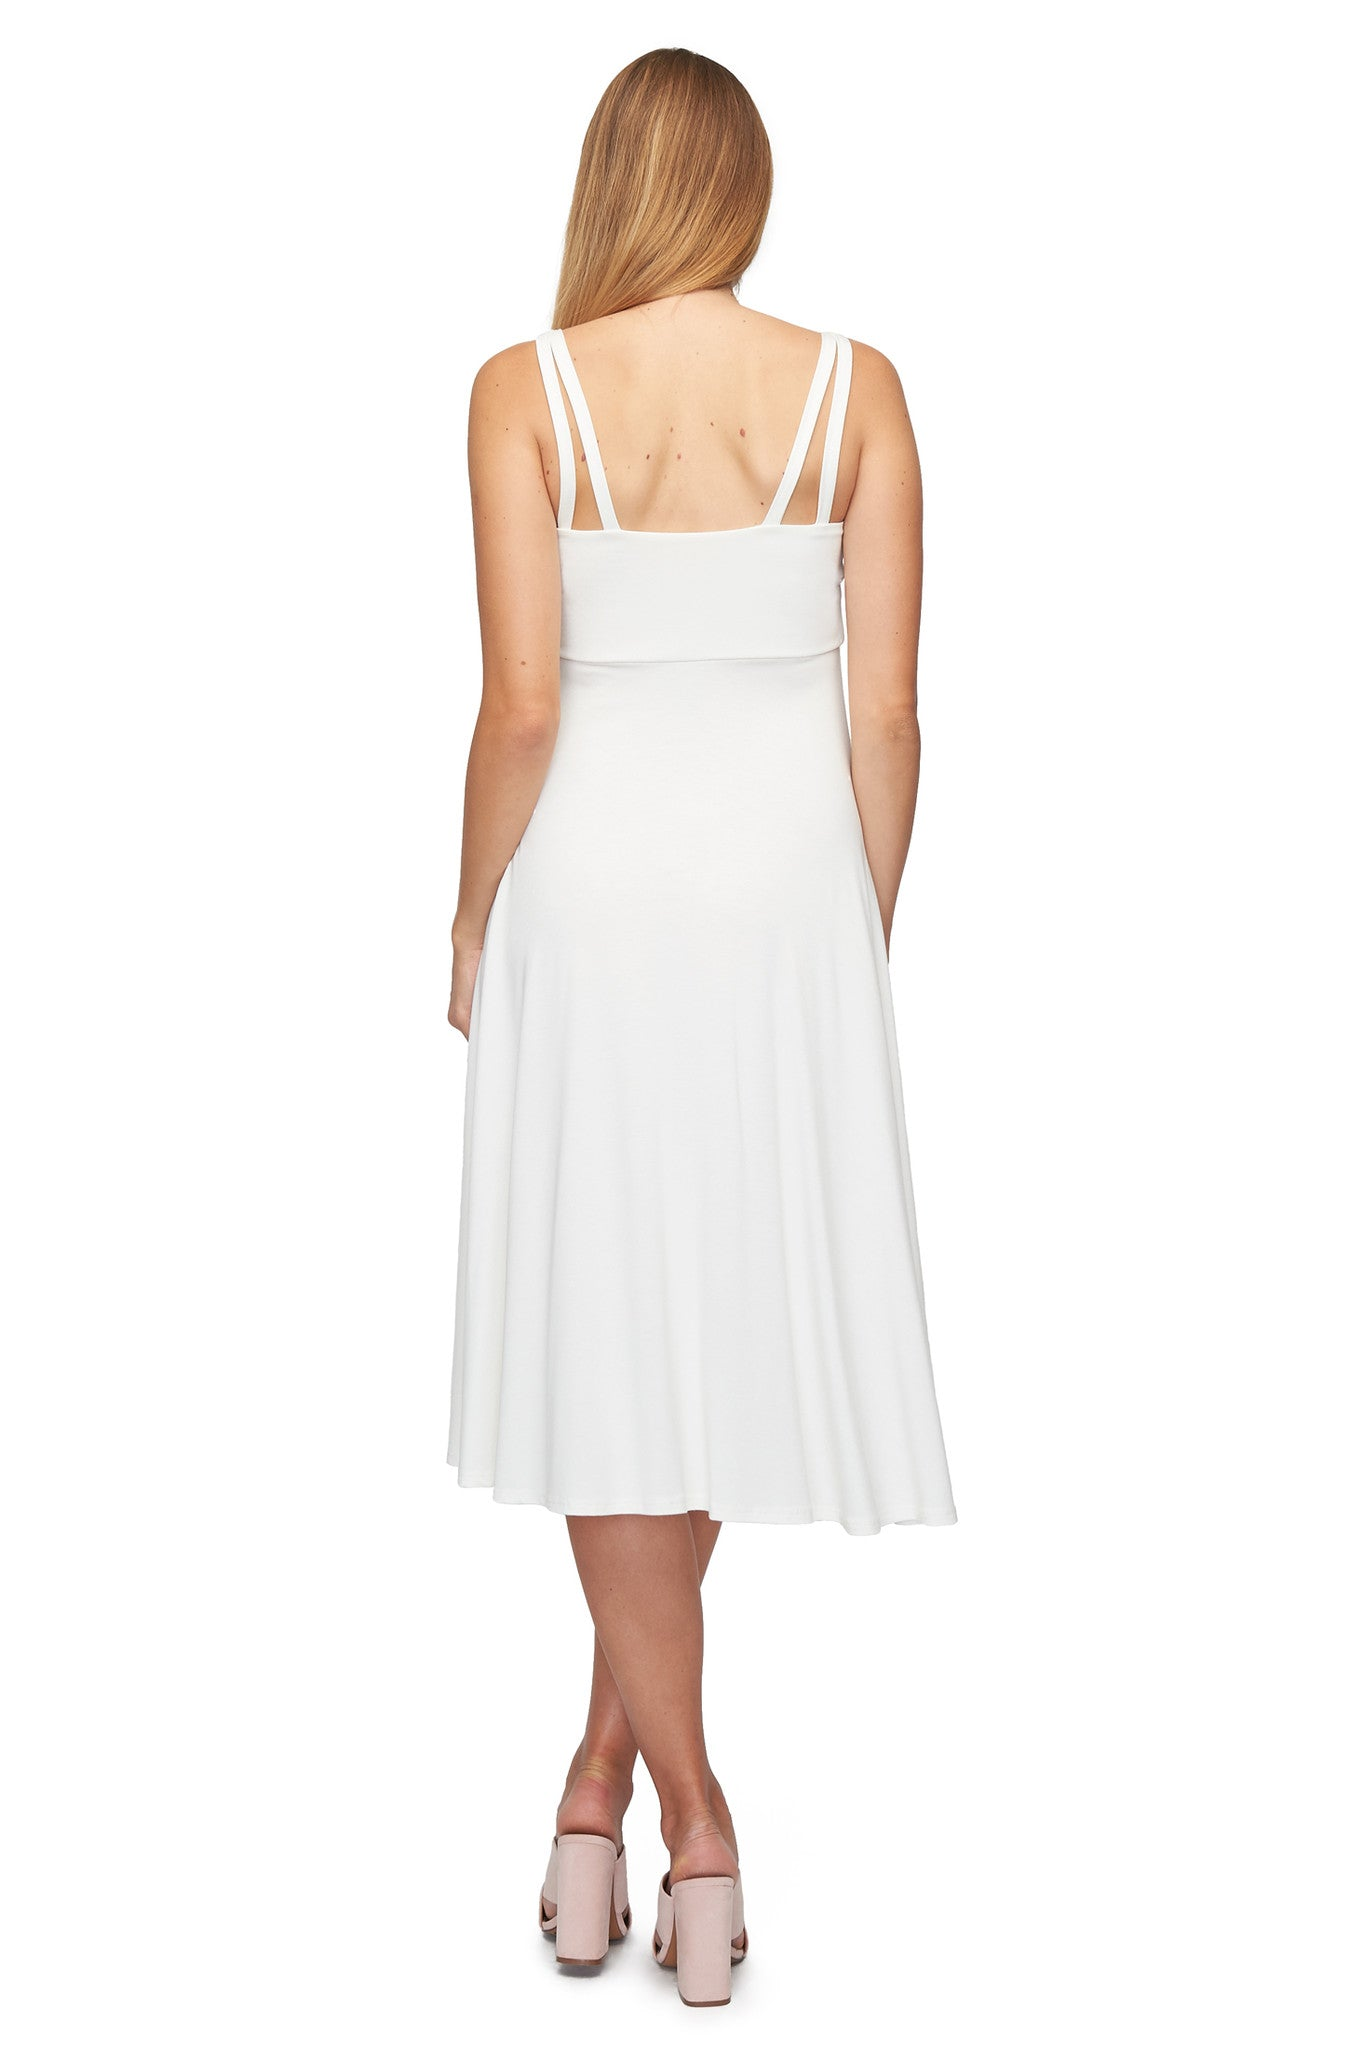 Valery Dress - White